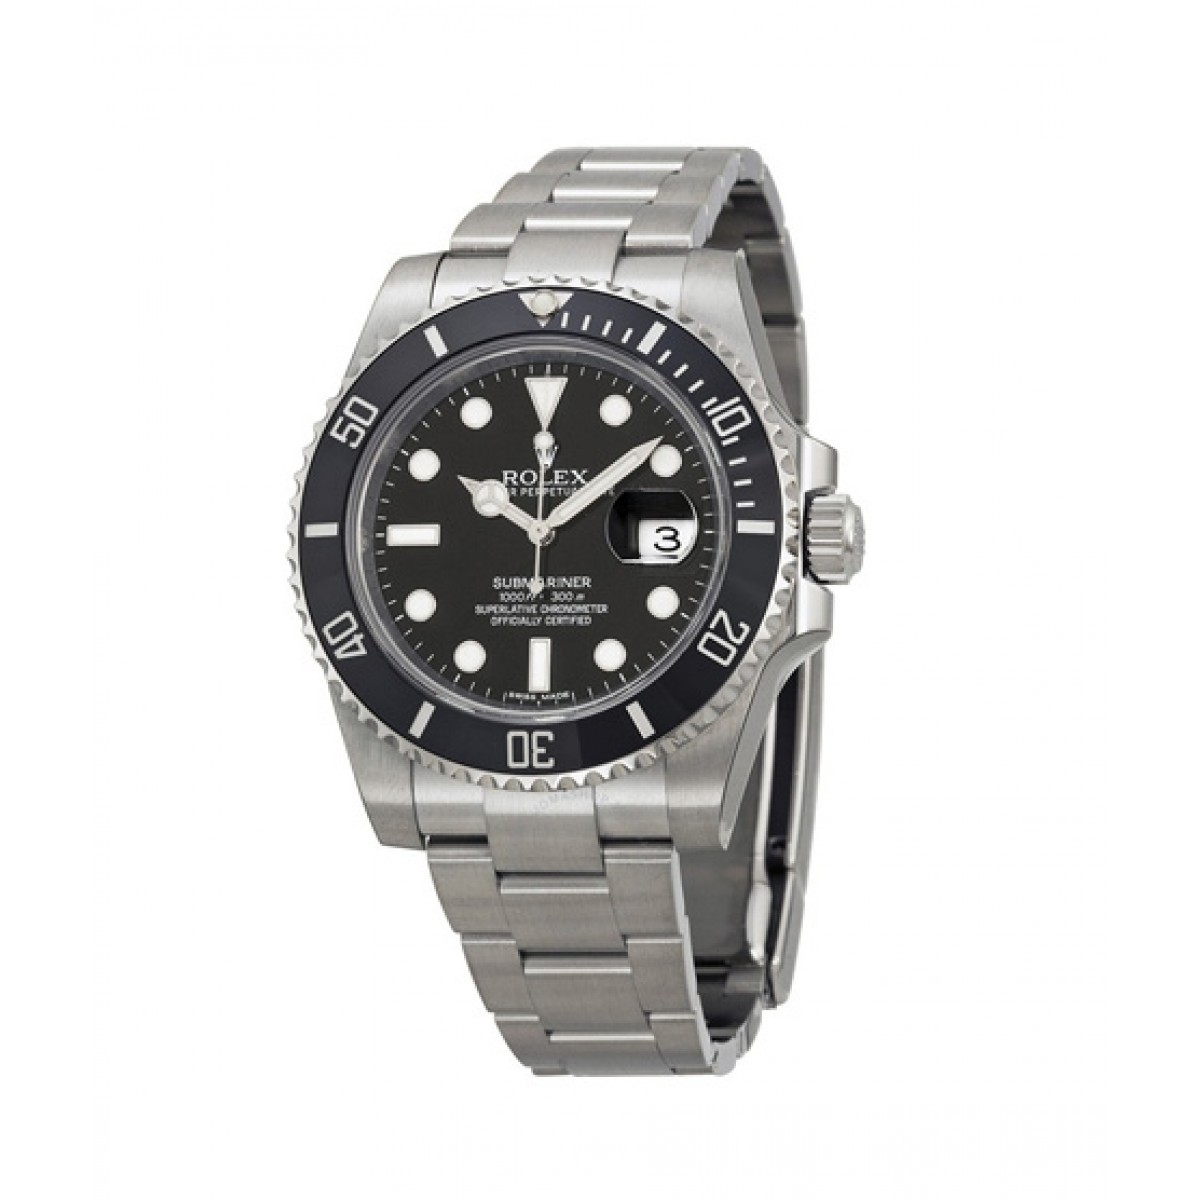 Rolex Submariner Date Men\u0027s Watch Silver (116610LN)